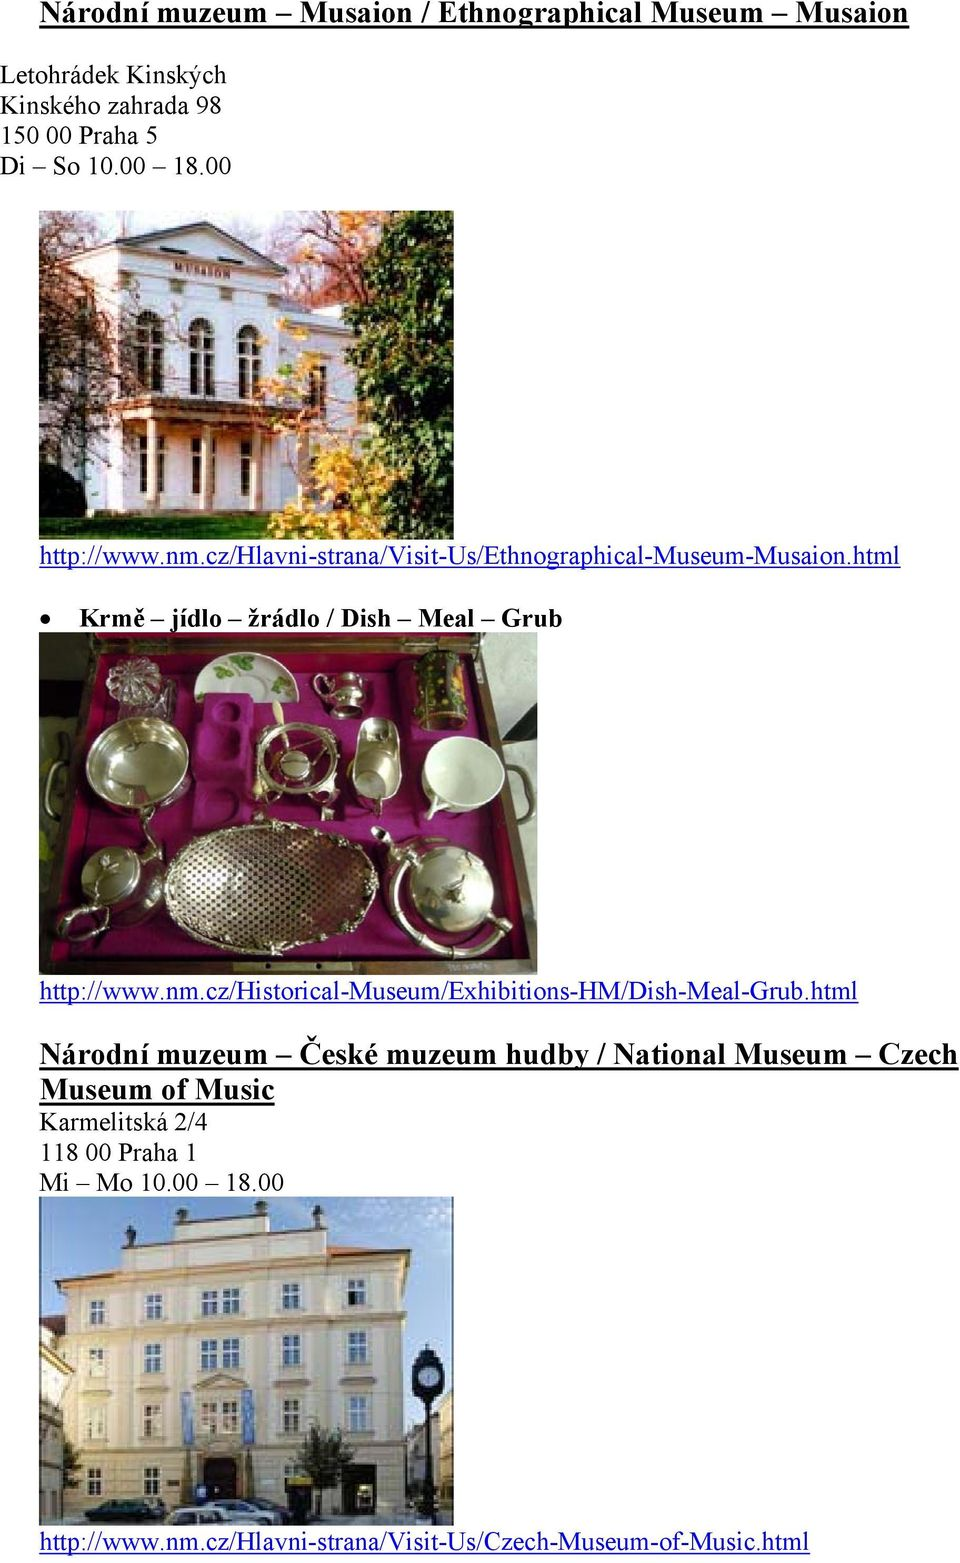 nm.cz/historical-museum/exhibitions-hm/dish-meal-grub.